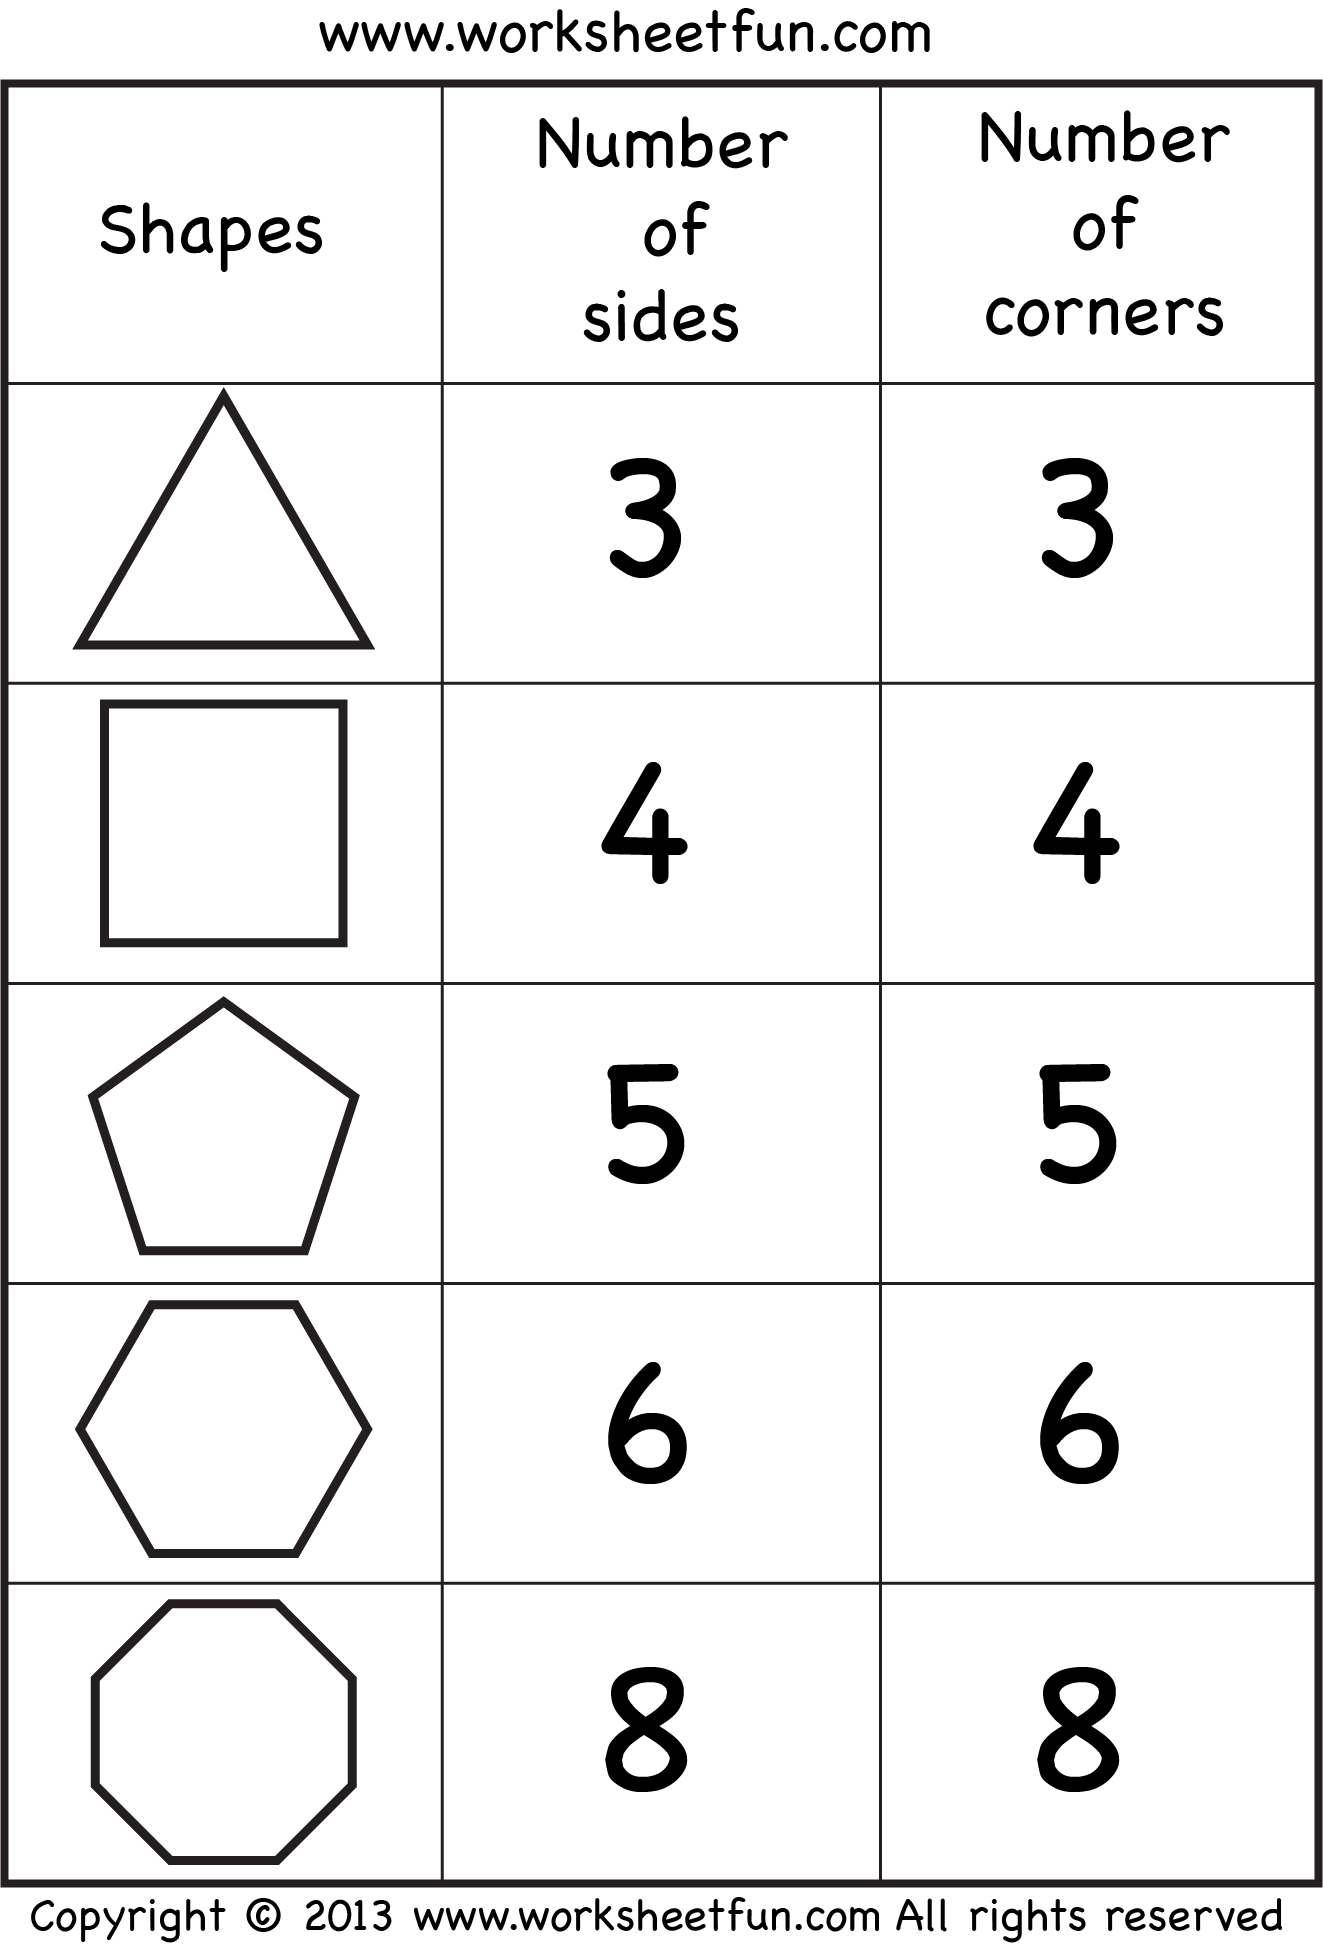 Shapes Number Of Sides Number Of Corners 2 Worksheets Free Printable Worksheets